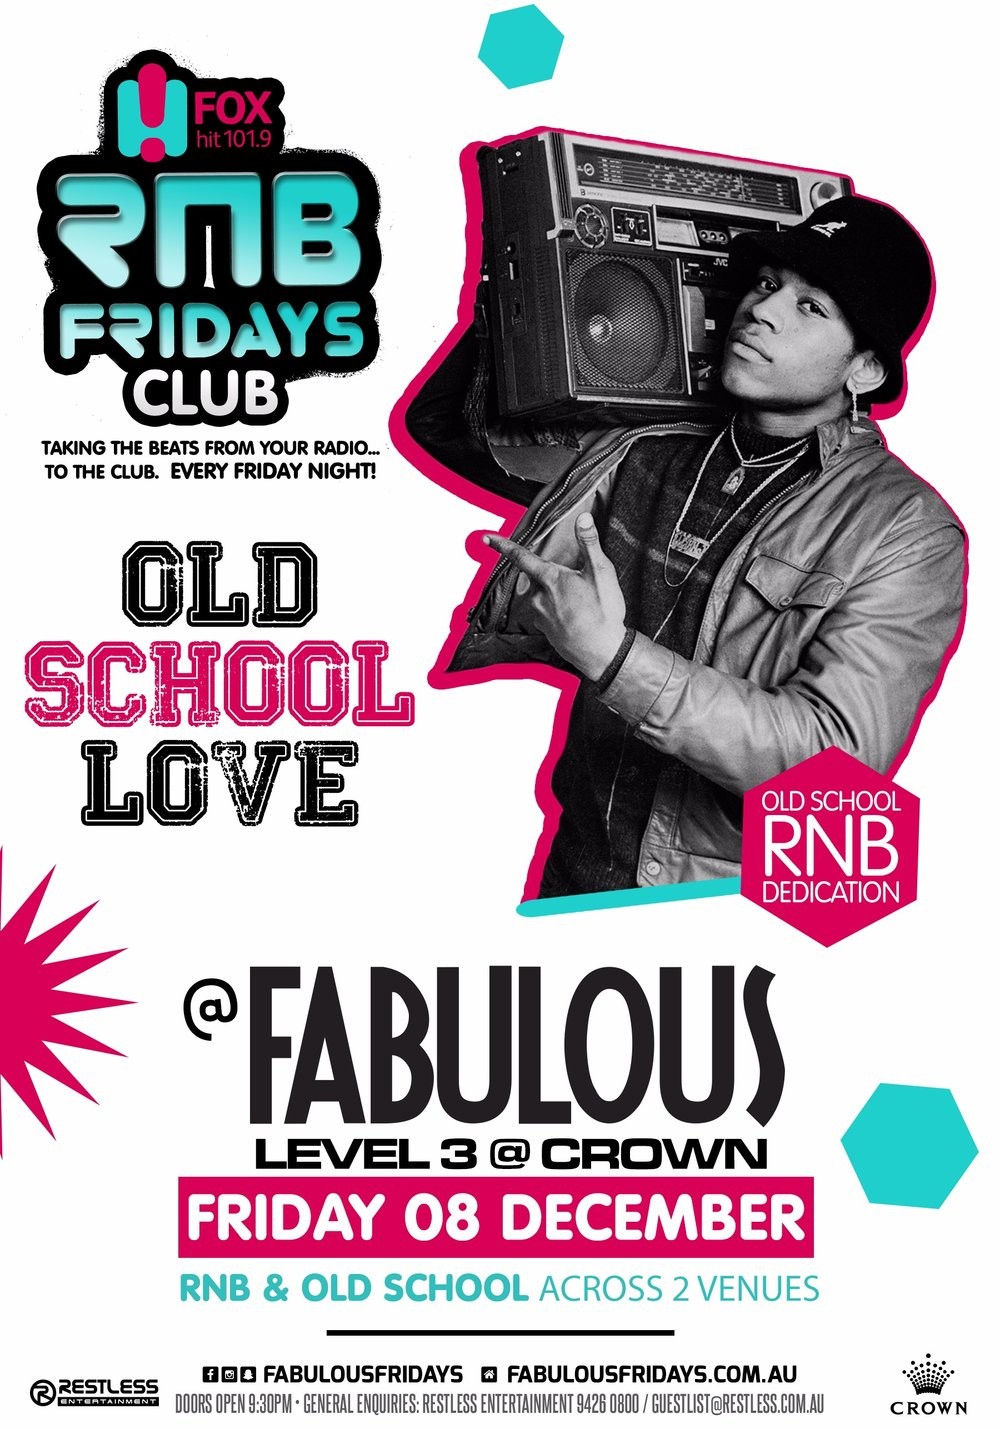 081217-Crown-Melbourne-Nightclubs-TherapyCo-FABULOUS-OldSchoolLove-800x650.jpg